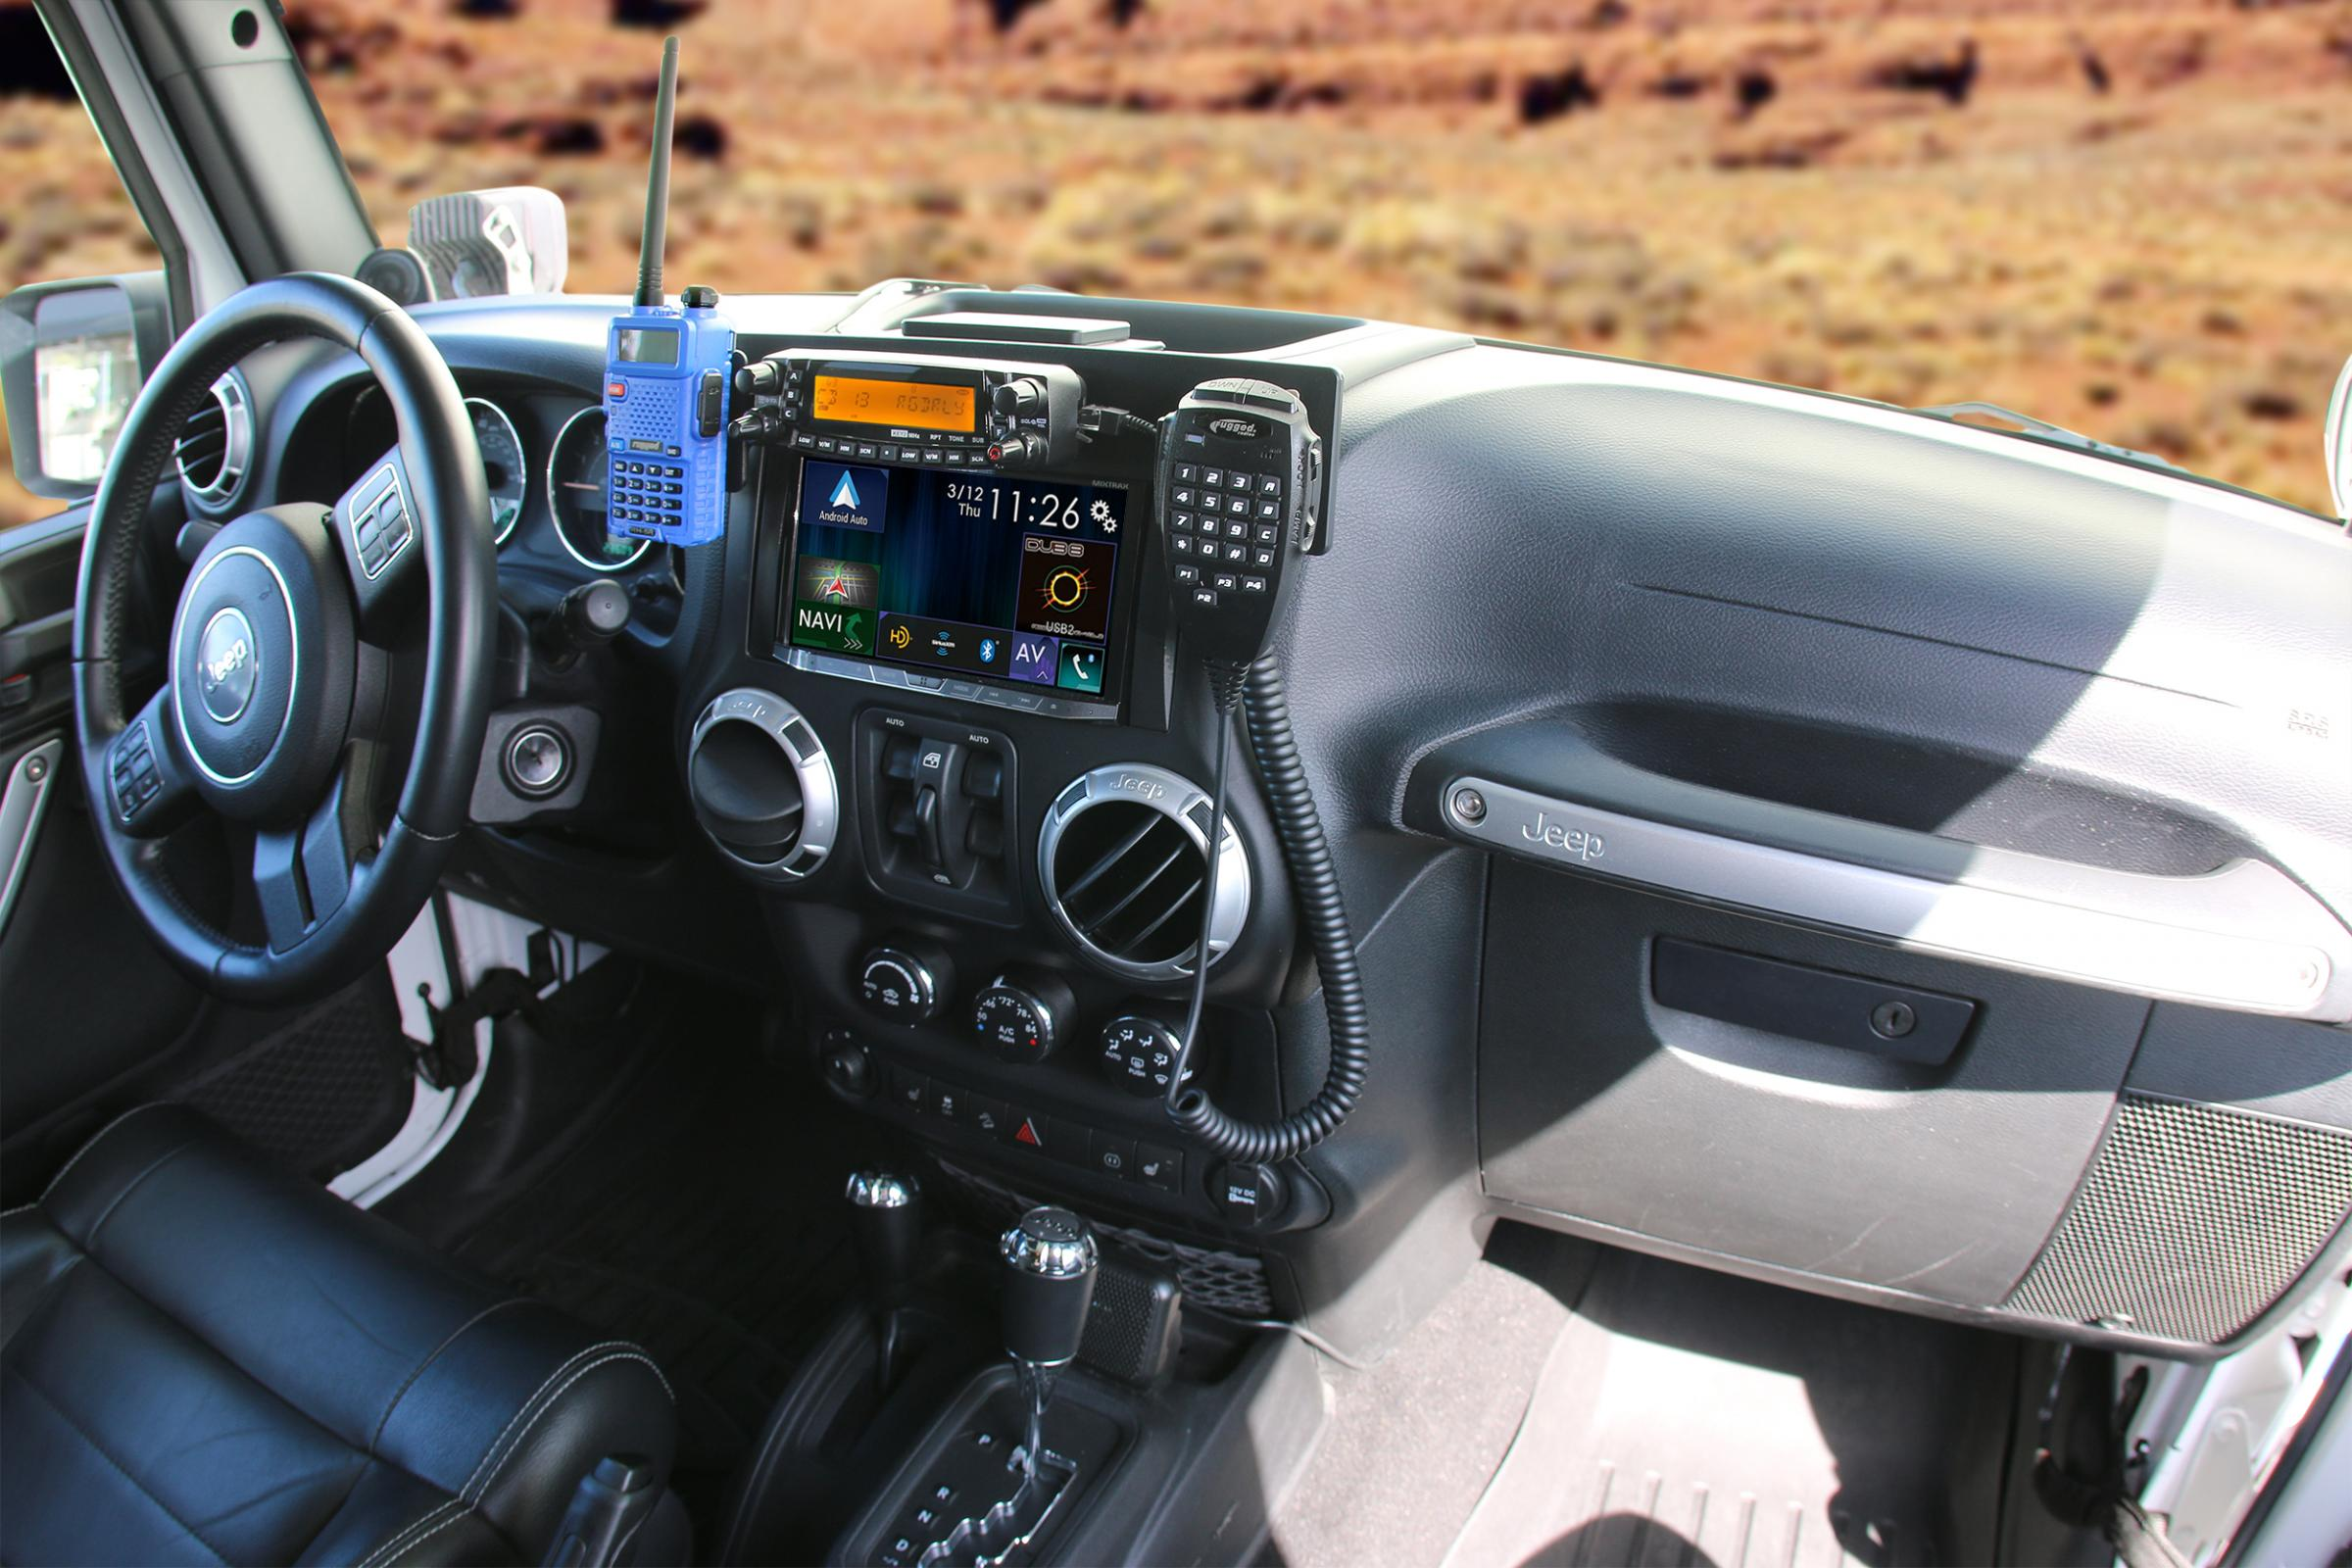 New RM50-MB Multi-Band Radio — Merging All Frequency Bands